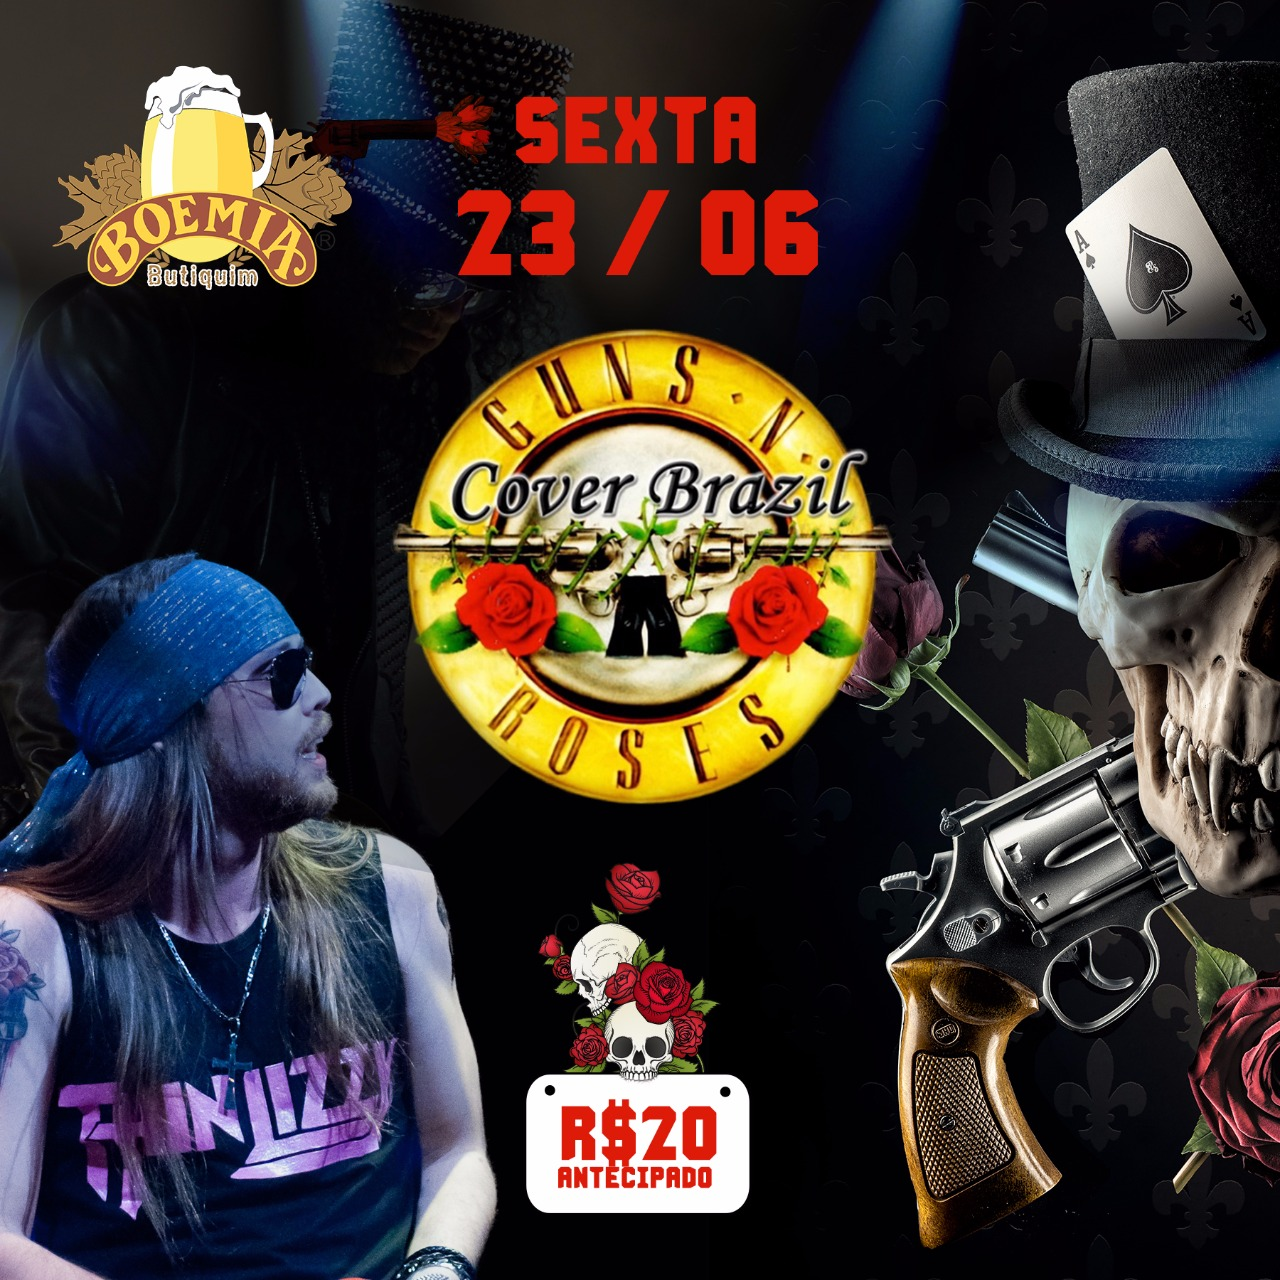 Guns_evento_perfil